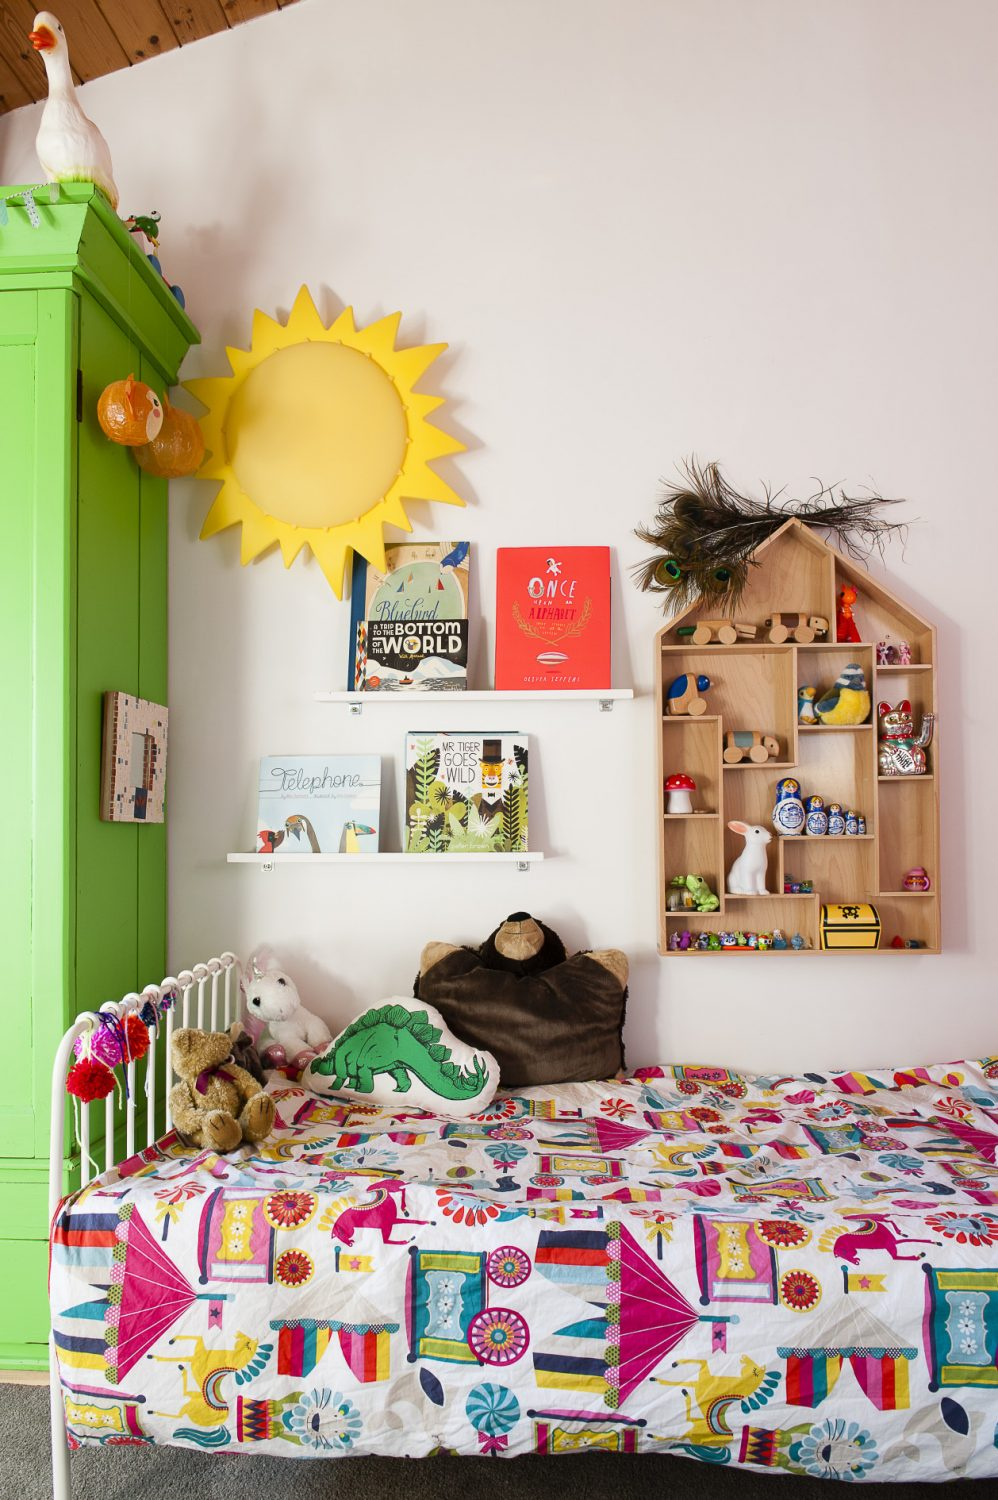 Daughter Esther's room sports the same dramatic pitched pine ceiling as her parents'. Her wardrobe started life a plain pine but is now a bright pea green. Books and ornaments are kept neatly ordered on floating shelving